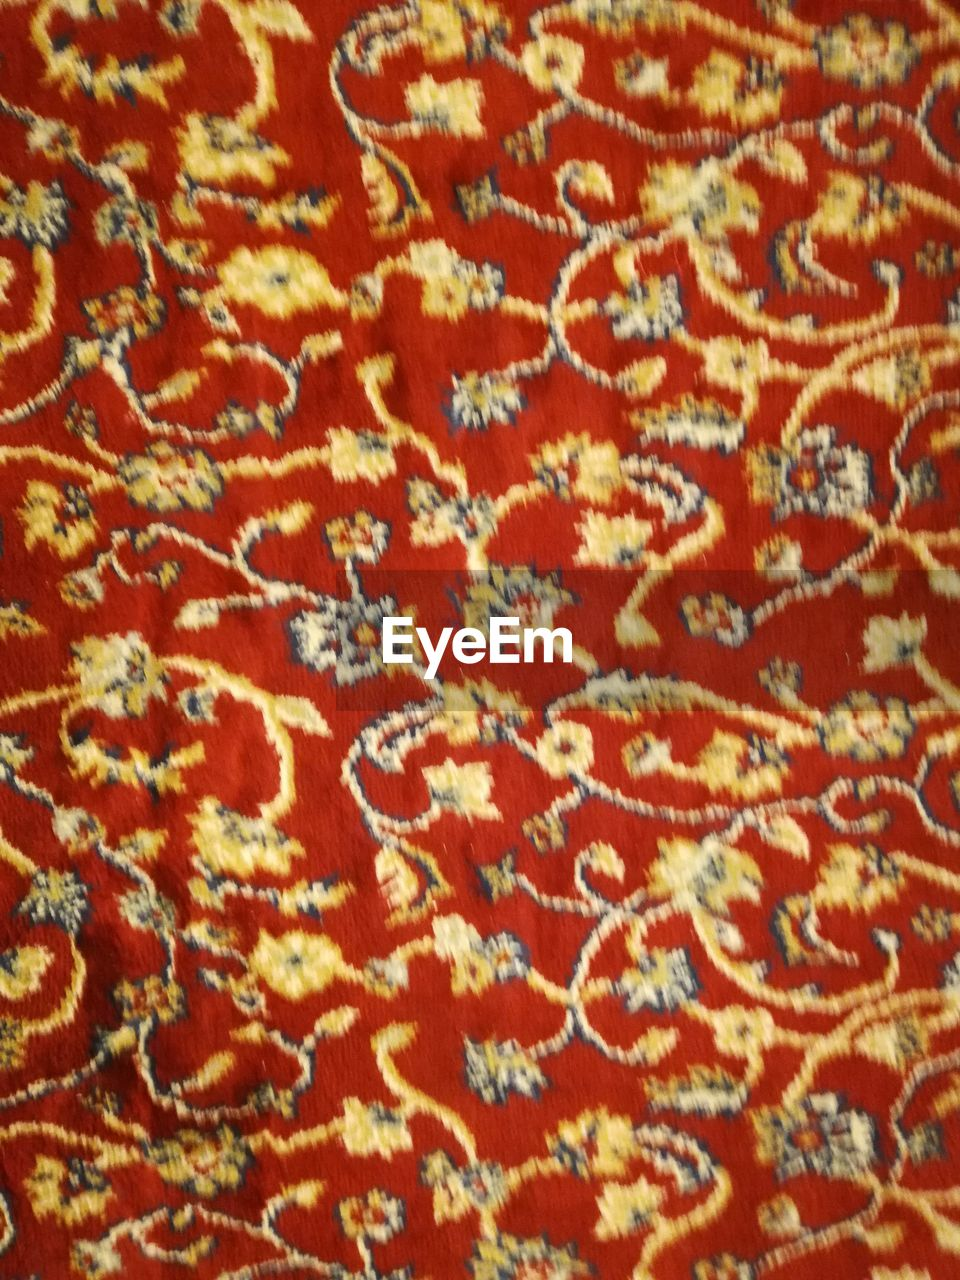 backgrounds, full frame, pattern, textile, close-up, red, art and craft, no people, indoors, design, creativity, craft, selective focus, textured, carpet - decor, woven, embroidery, thread, industry, floral pattern